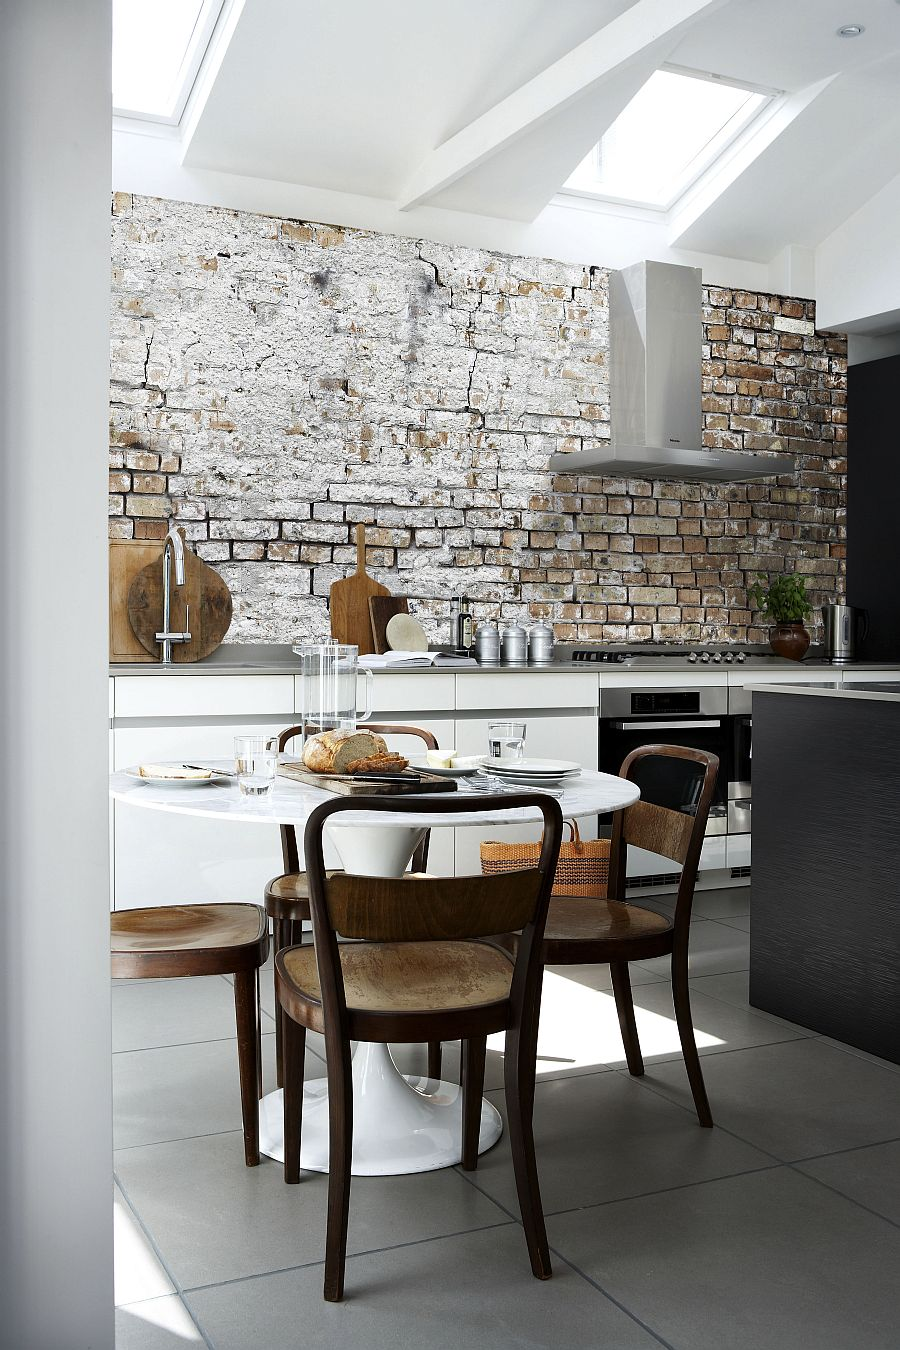 aged-brick-wall-wallpaper-in-the-kitchen-combines-two-hot-design-trends